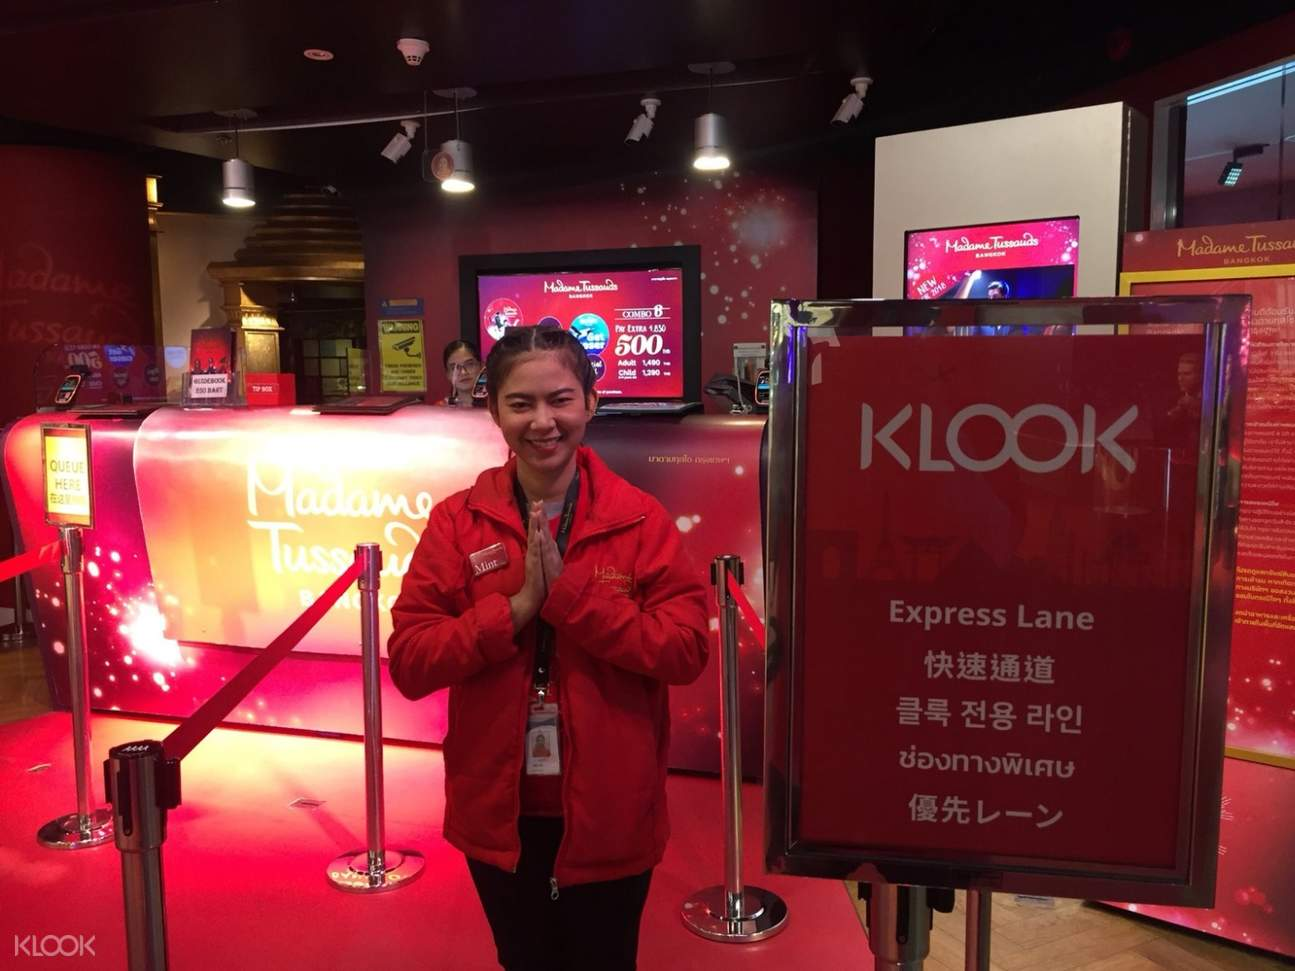 madame tussaud staff infront of klook express lane